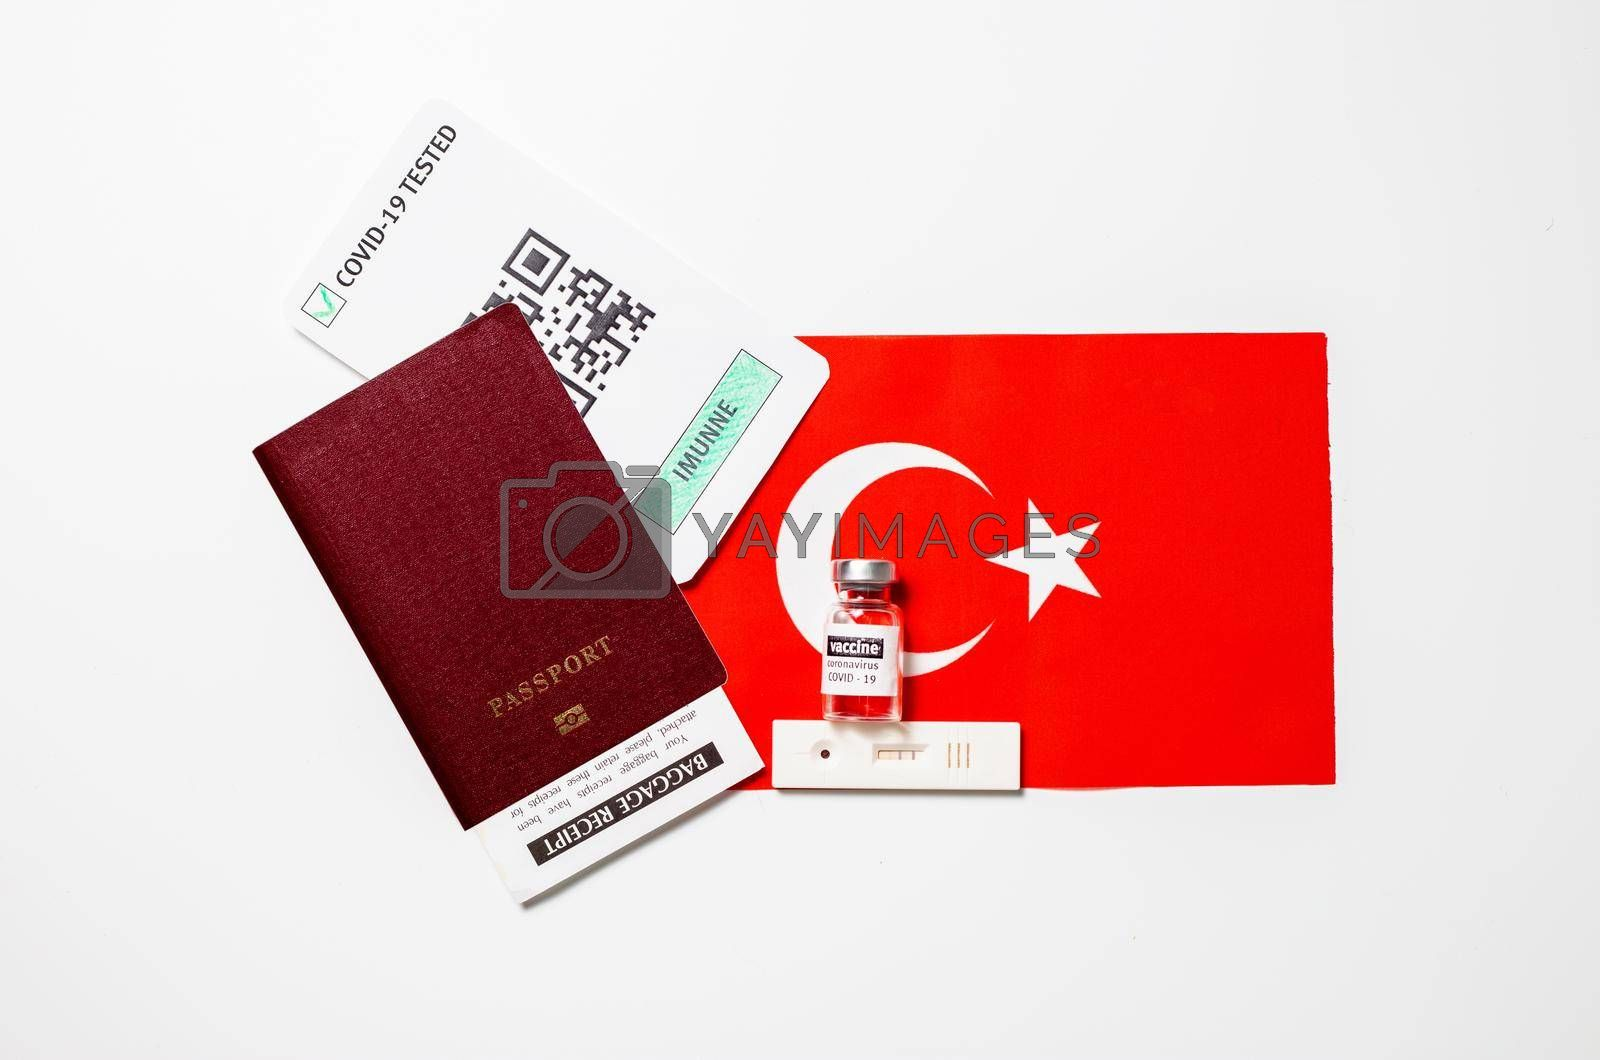 Immunity passport allows you travel during lockdown, Vaccination passport against covid-19 in Turkey. Certificate for people who have had coronavirus or made vaccine.